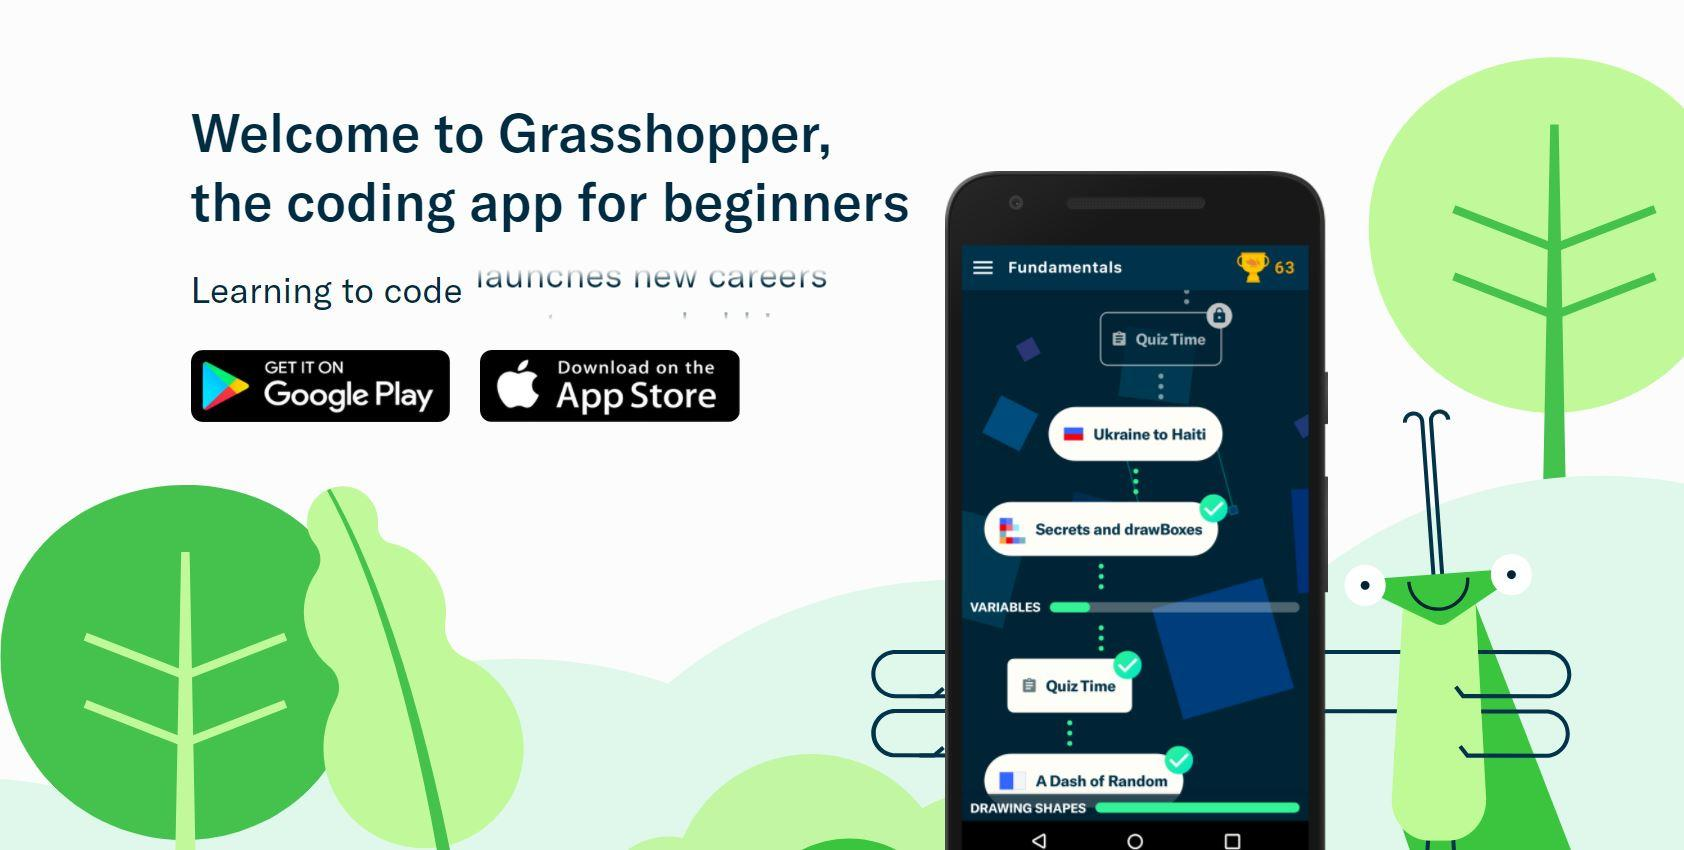 Dc5m United States It In English Created At 2018 04 20 0432 216 Jpeg 13kb Home Diy 12volt Trailer Wiring Campertrailersorg To Help Beginners Learn Coding On Their Smartphones Google Has Launched A New Code App Called Grasshopper Been By Team